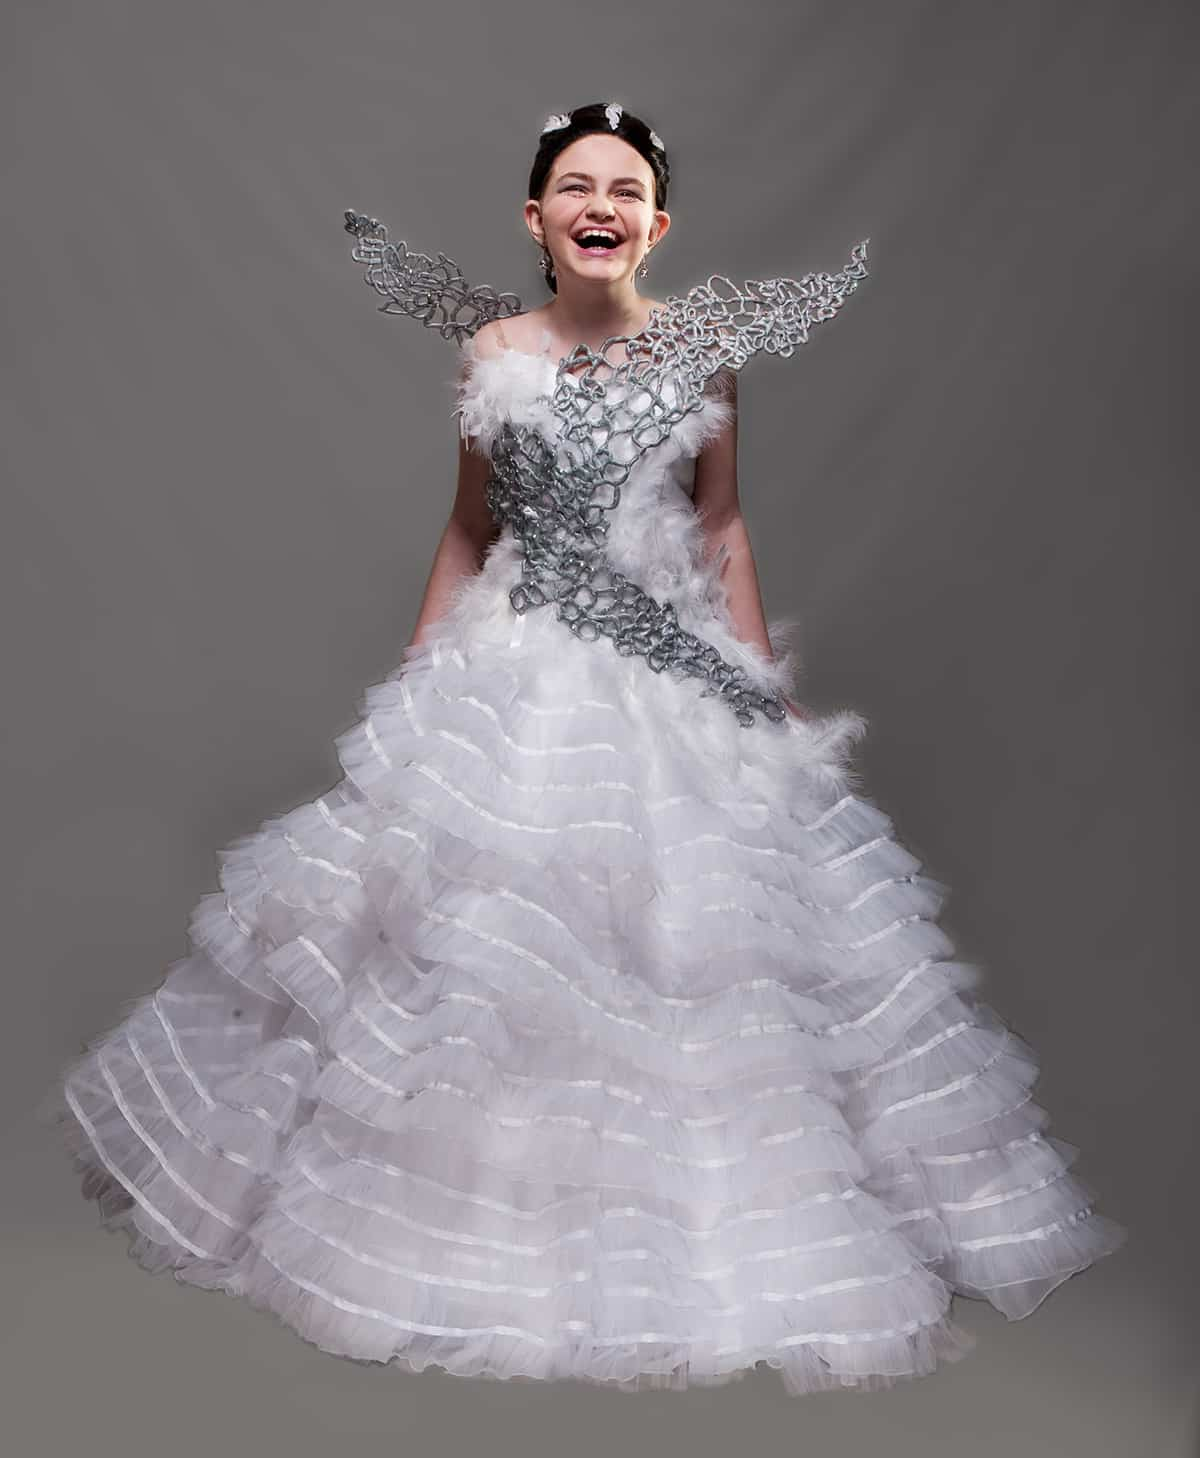 A beautiful young woman wearing a replica of the Katniss Wedding Gown from Hunger Games.